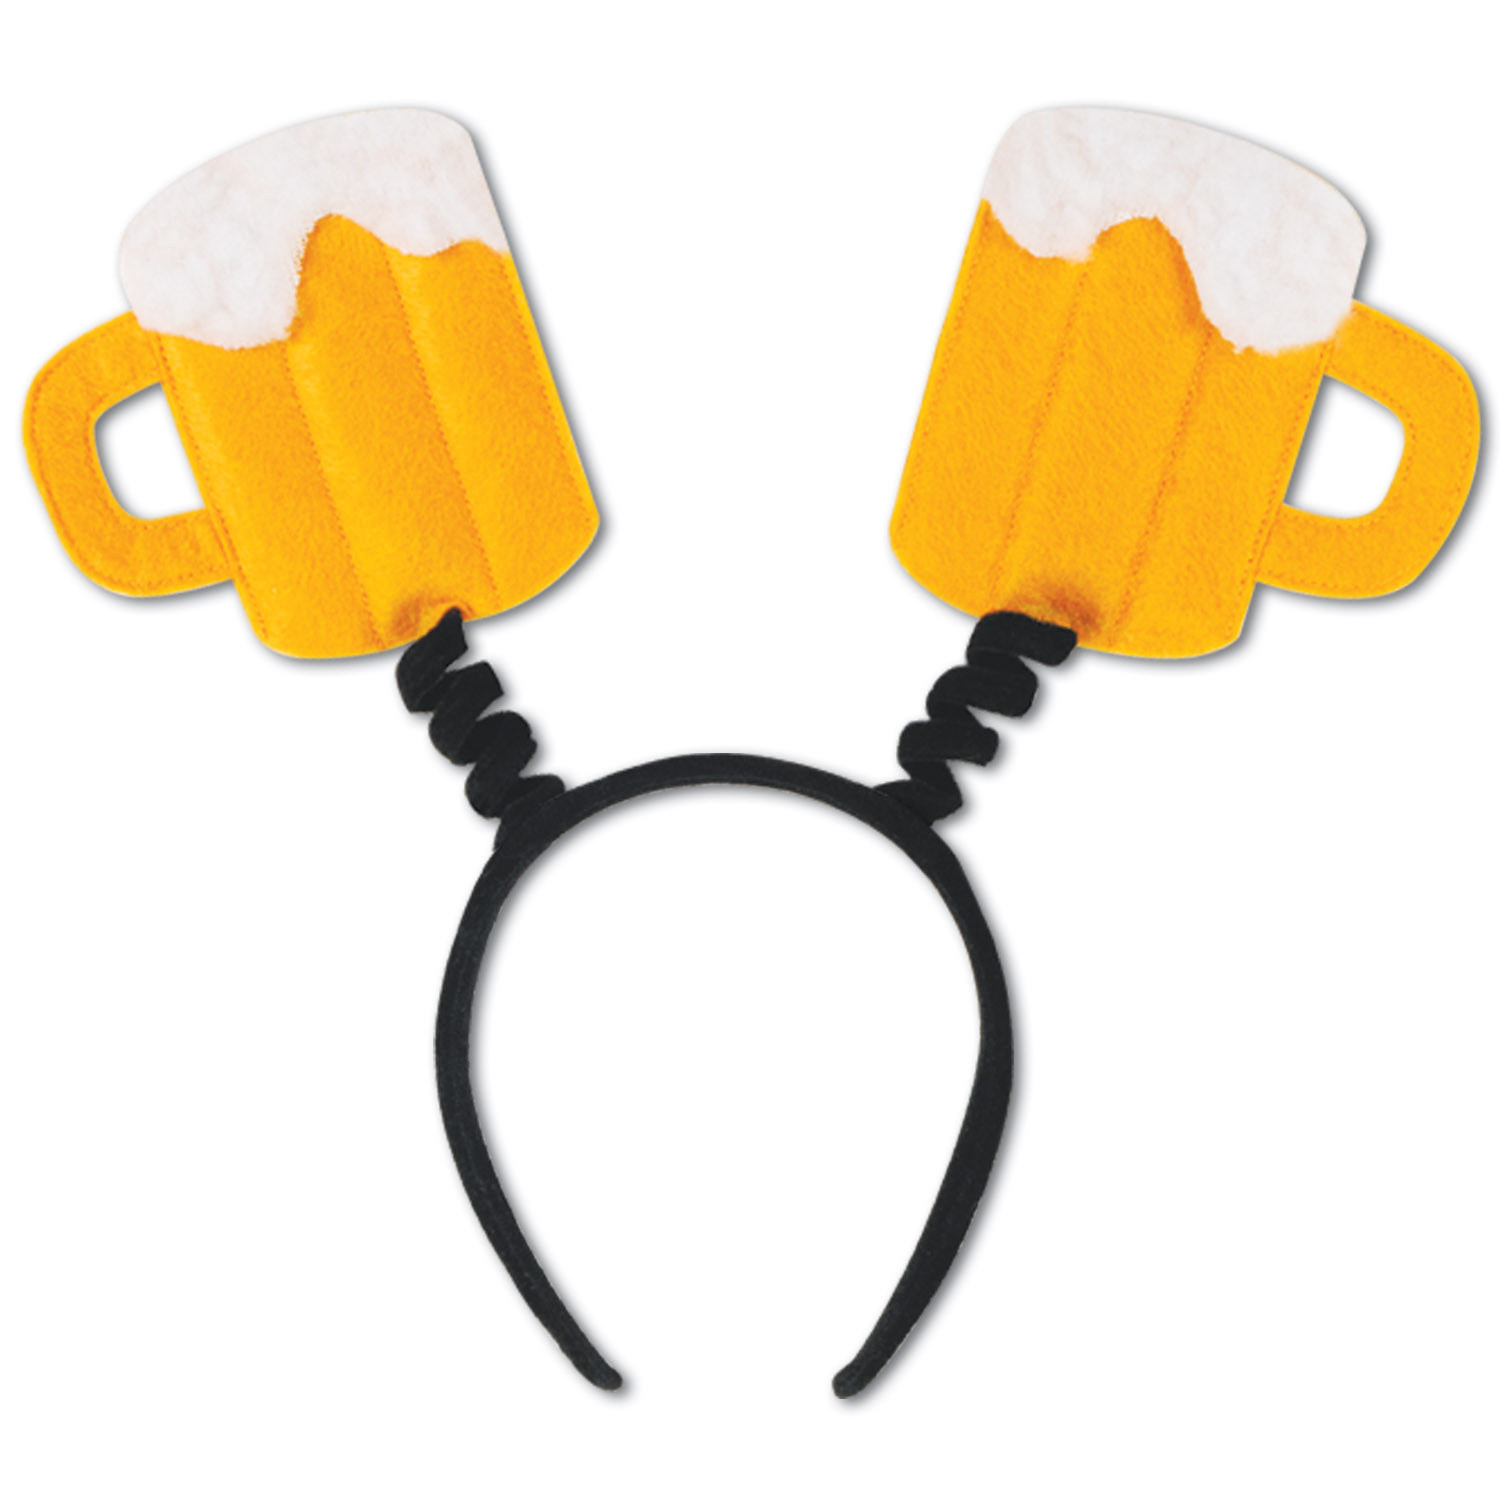 Beer Mug Boppers (Pack of 12) Beer Mug Boppers, party favor, oktoberfest, st. patricks day, wholesale, inexpensive, bulk